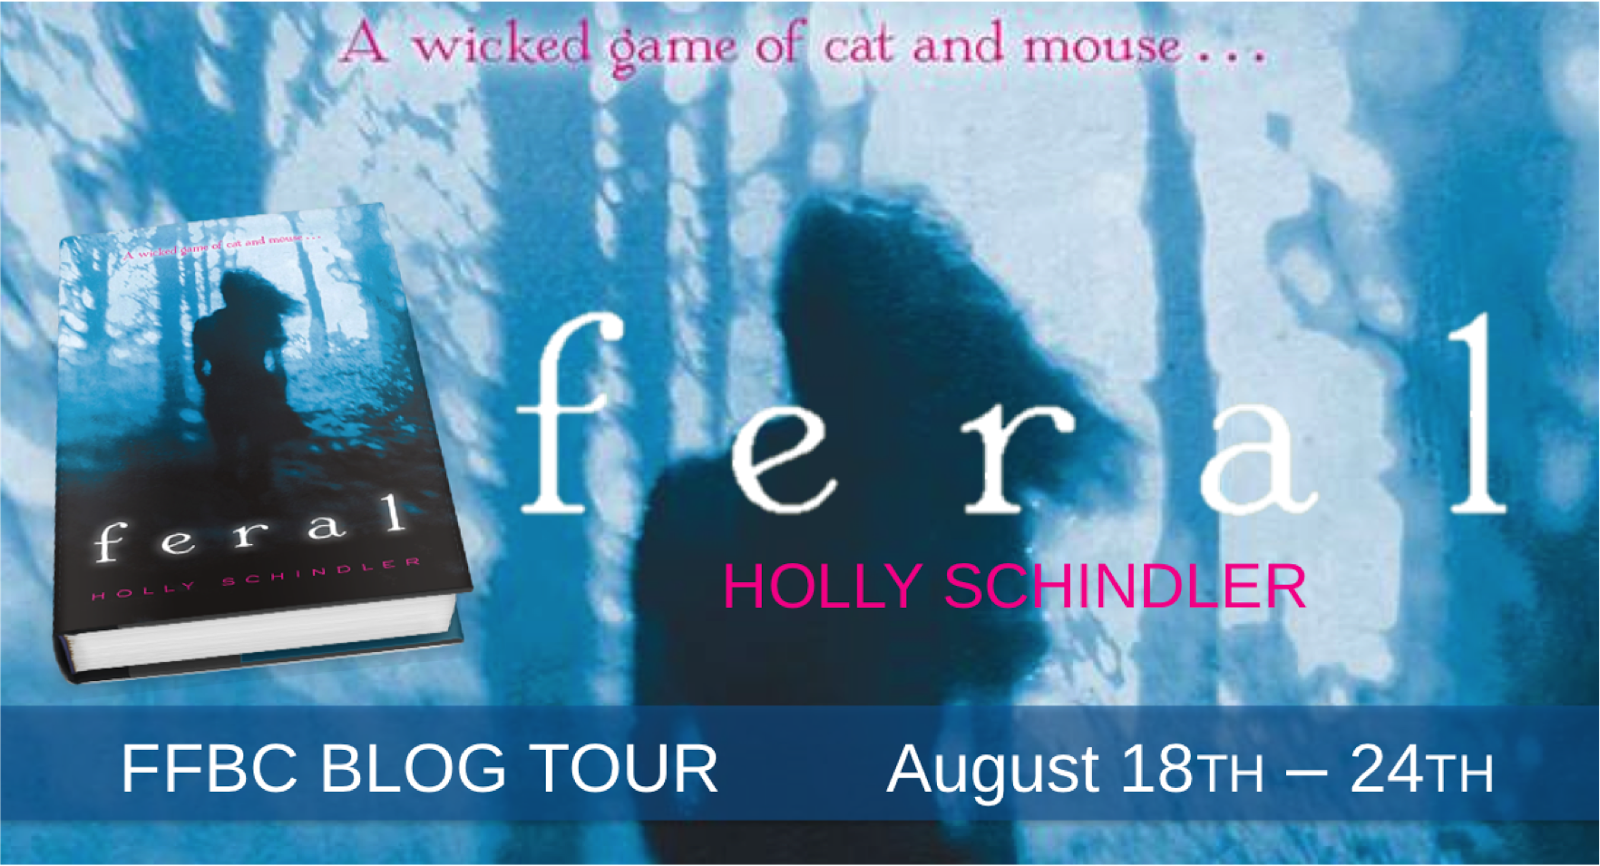 http://theunofficialaddictionbookfanclub.blogspot.com/2014/08/ffbc-blog-tour-feral-by-holly-schindler.html